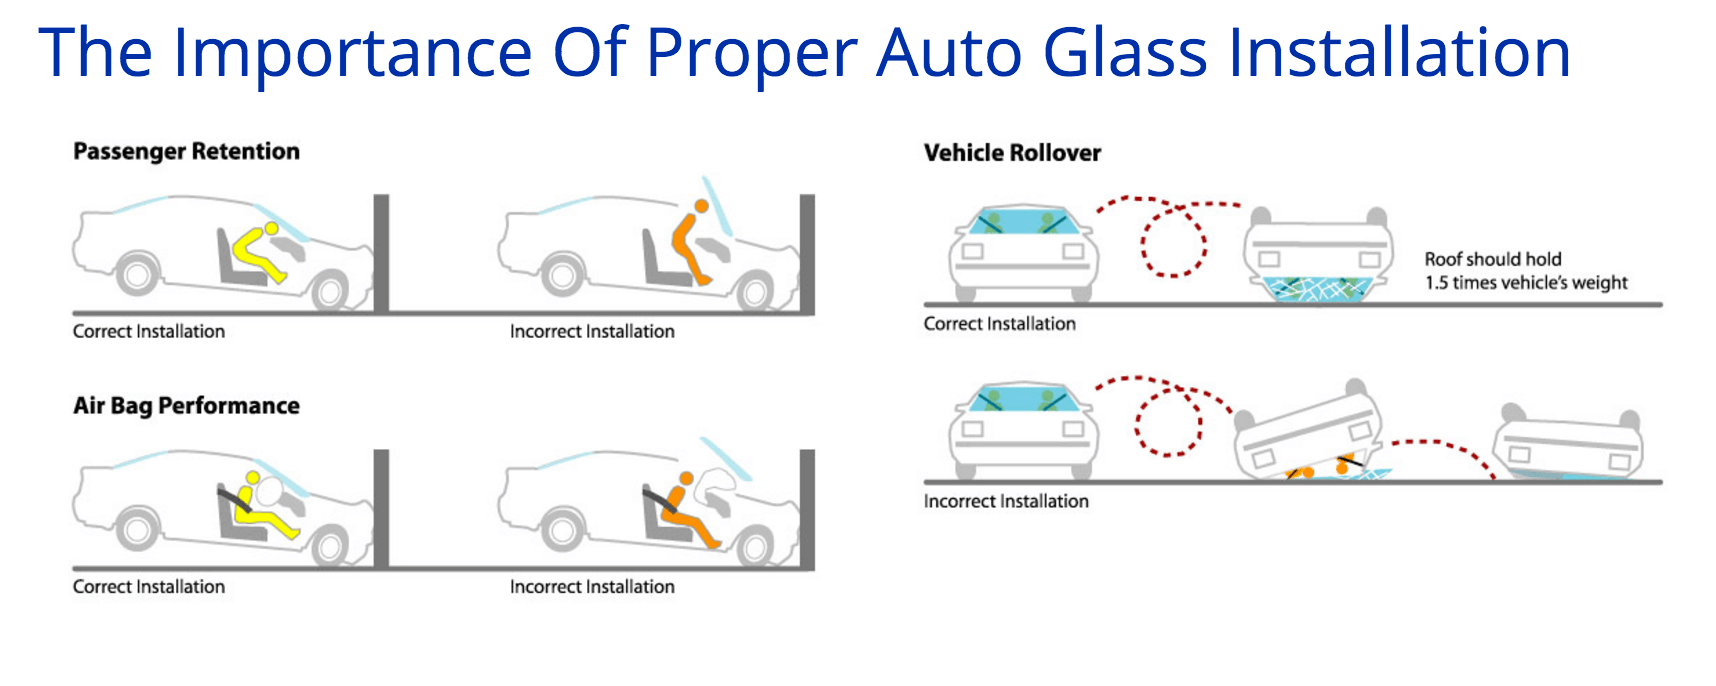 The importance of proper auto glass installation